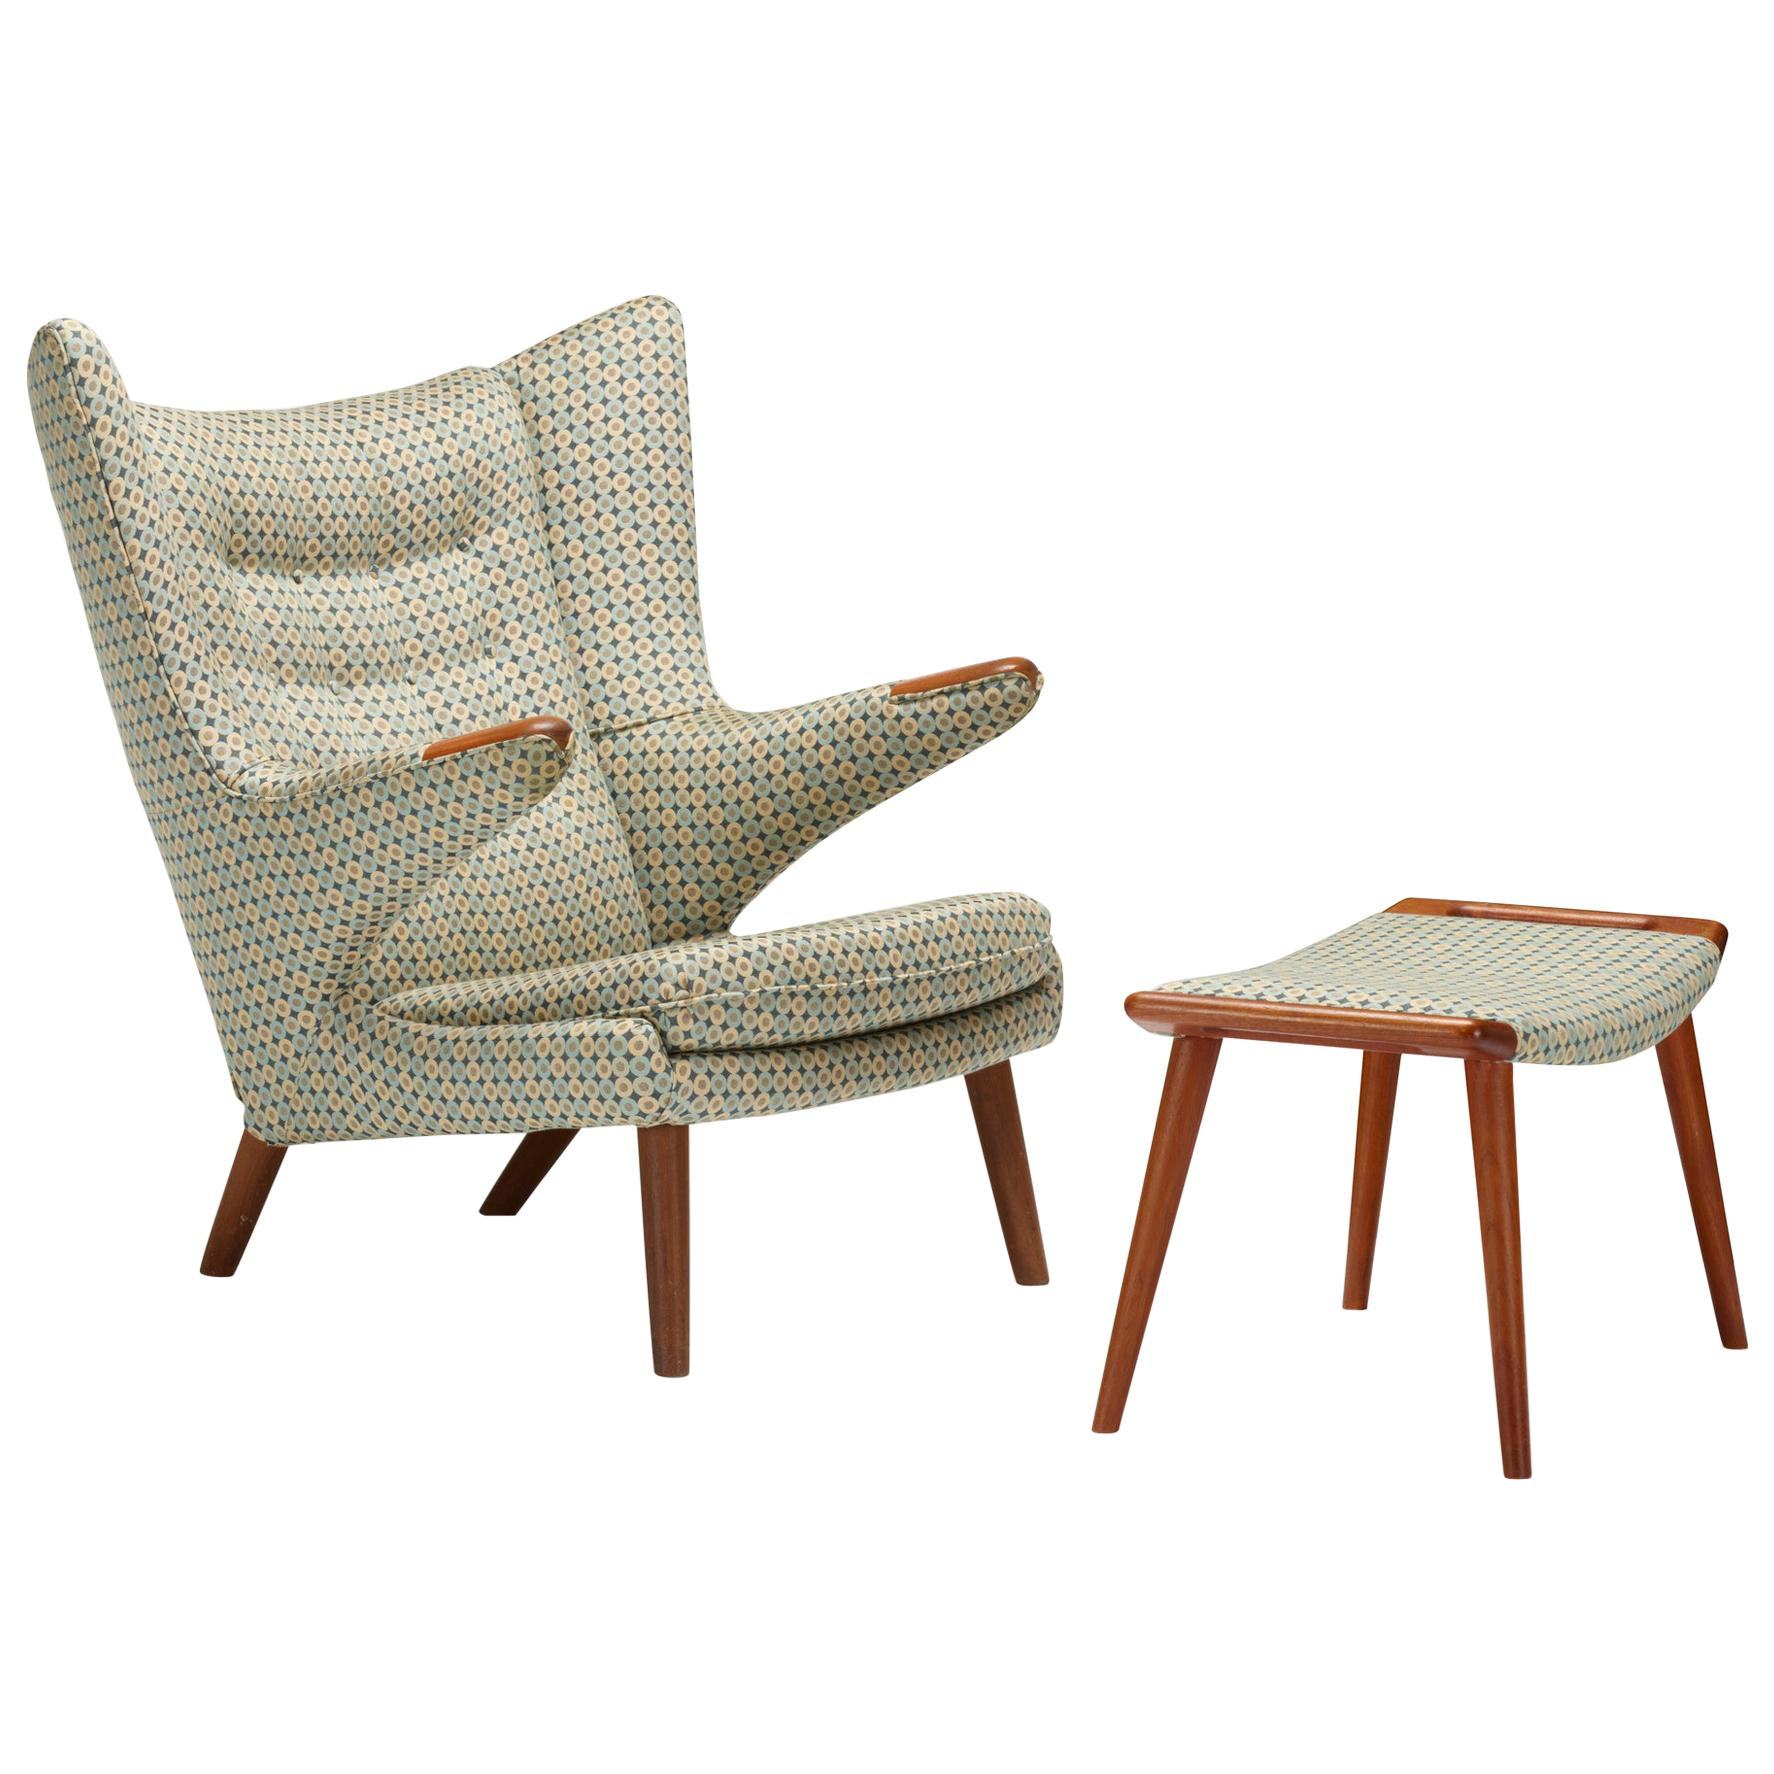 Teak ''Papa Bear'' Chair and Ottoman by Hans J. Wegner for A.P. Stolen